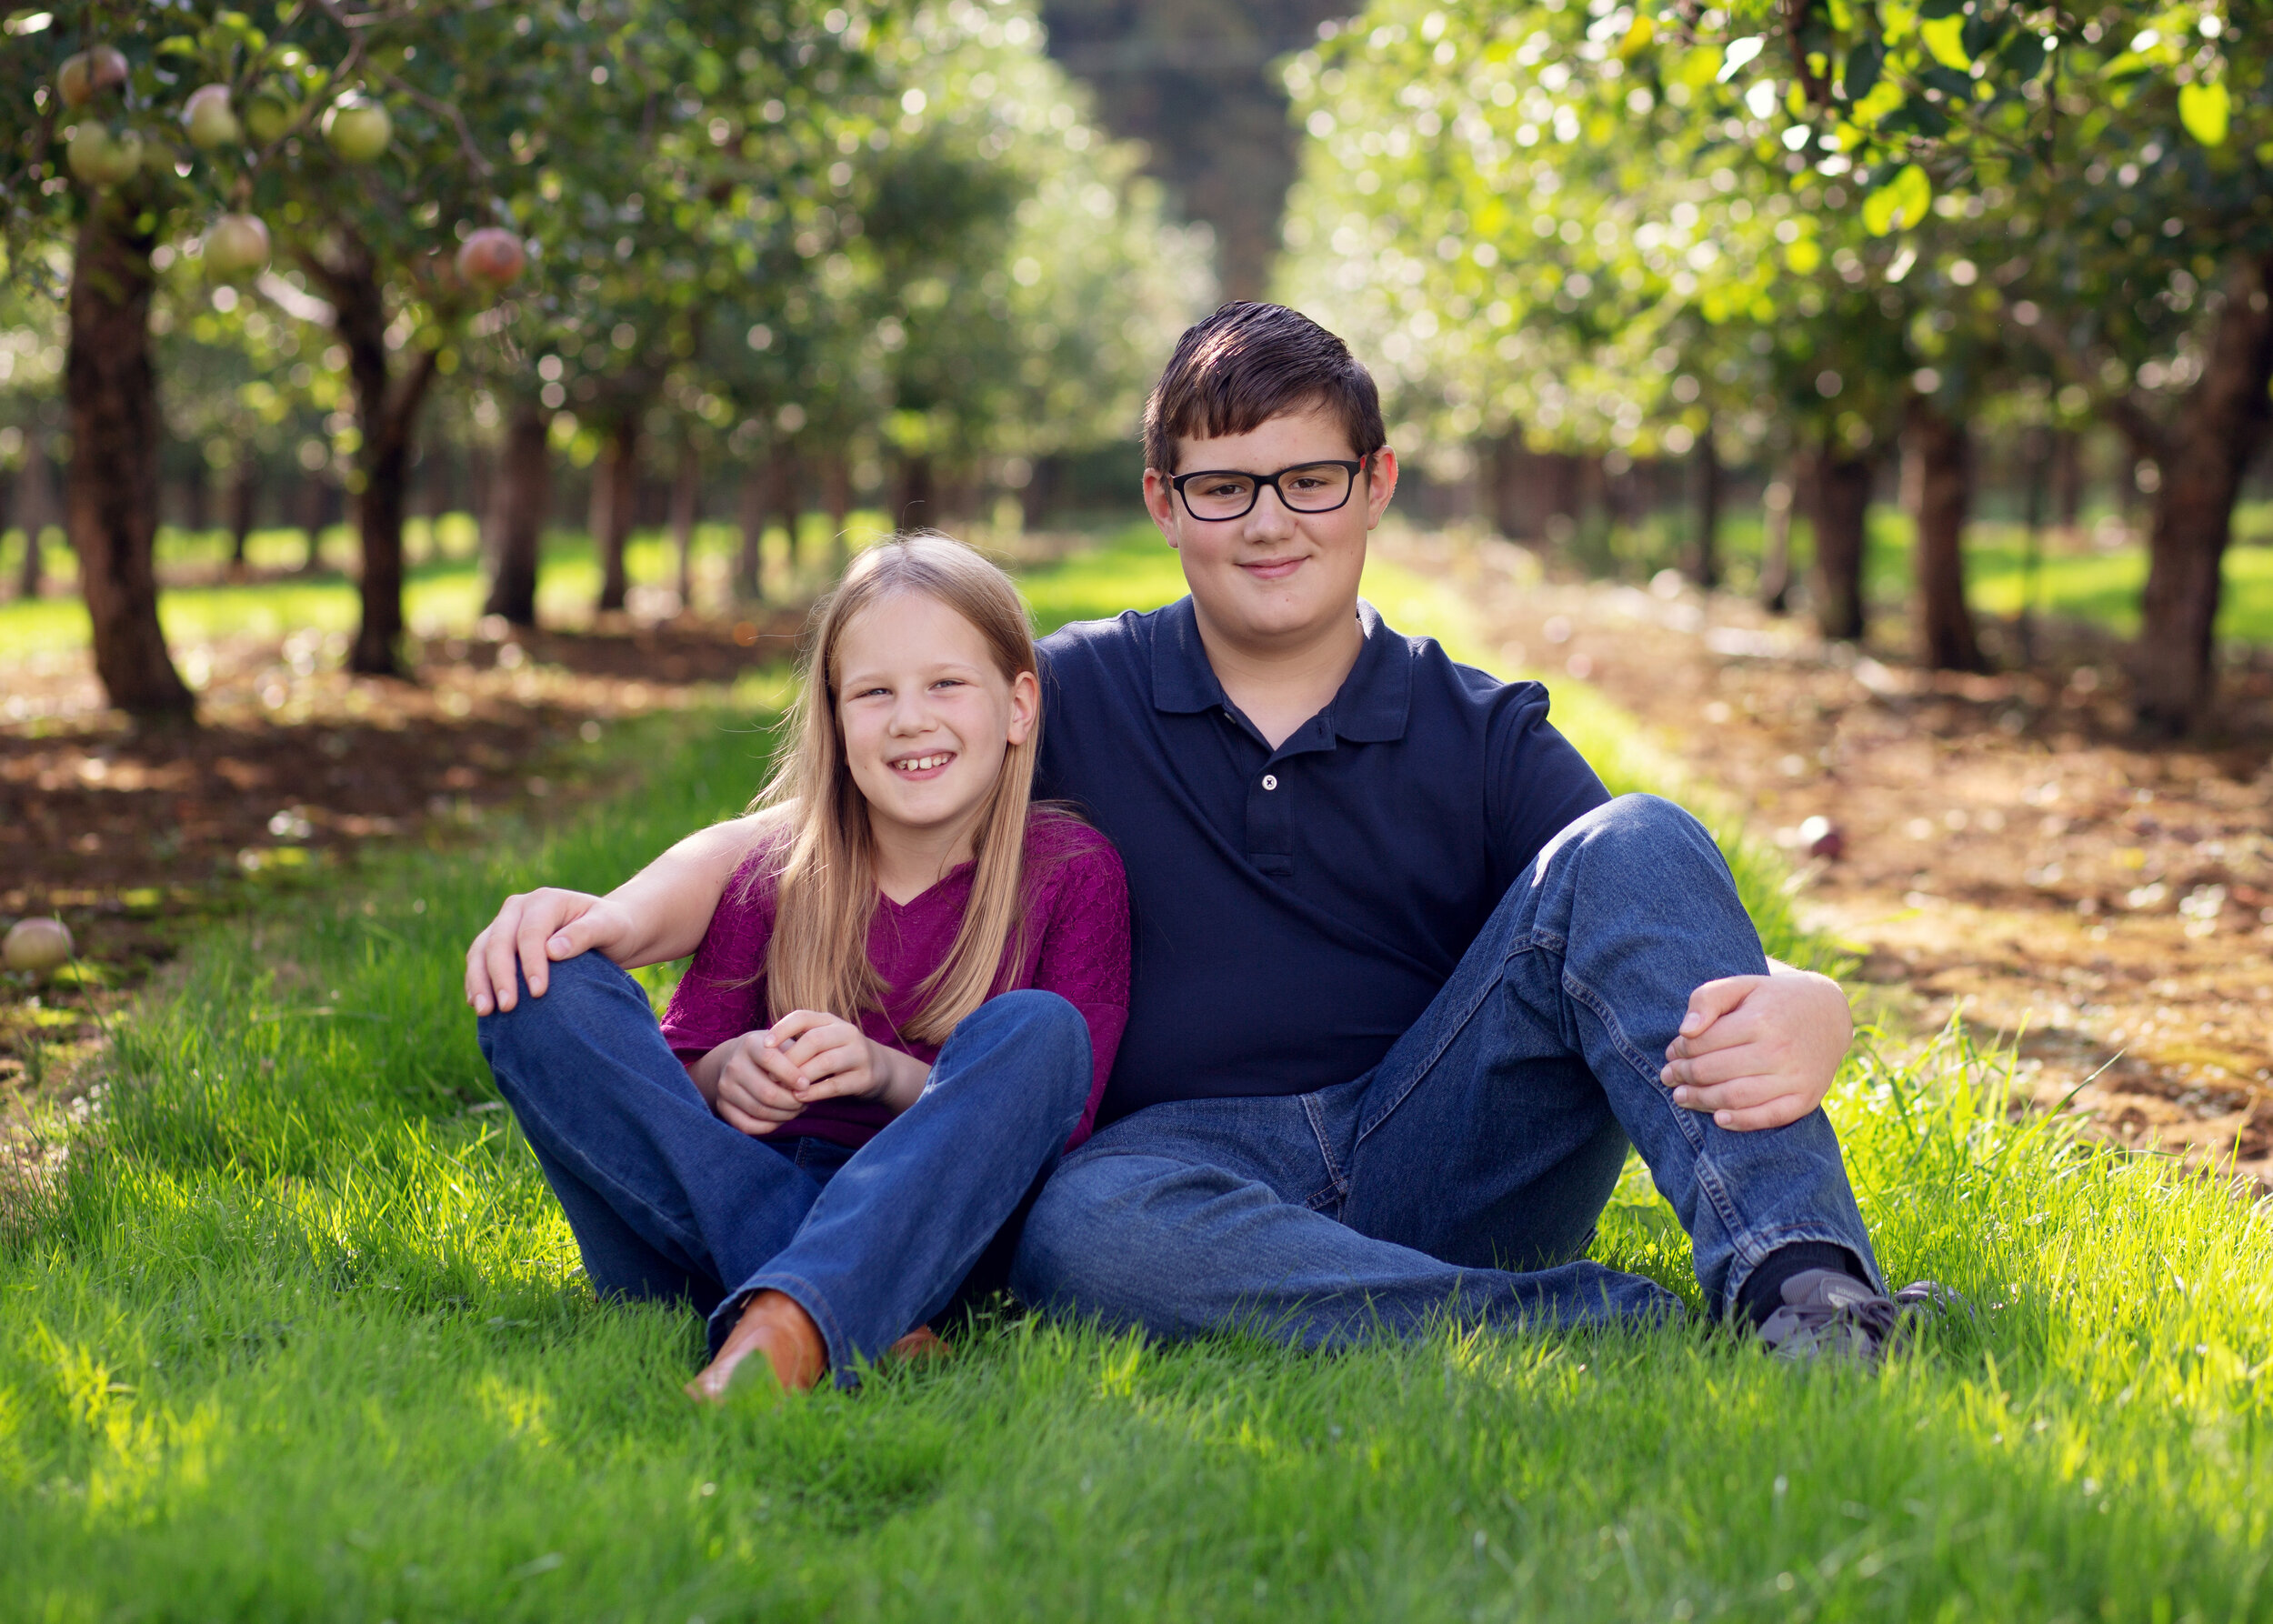 Sibling Picture | Kelly Rhoades Photography